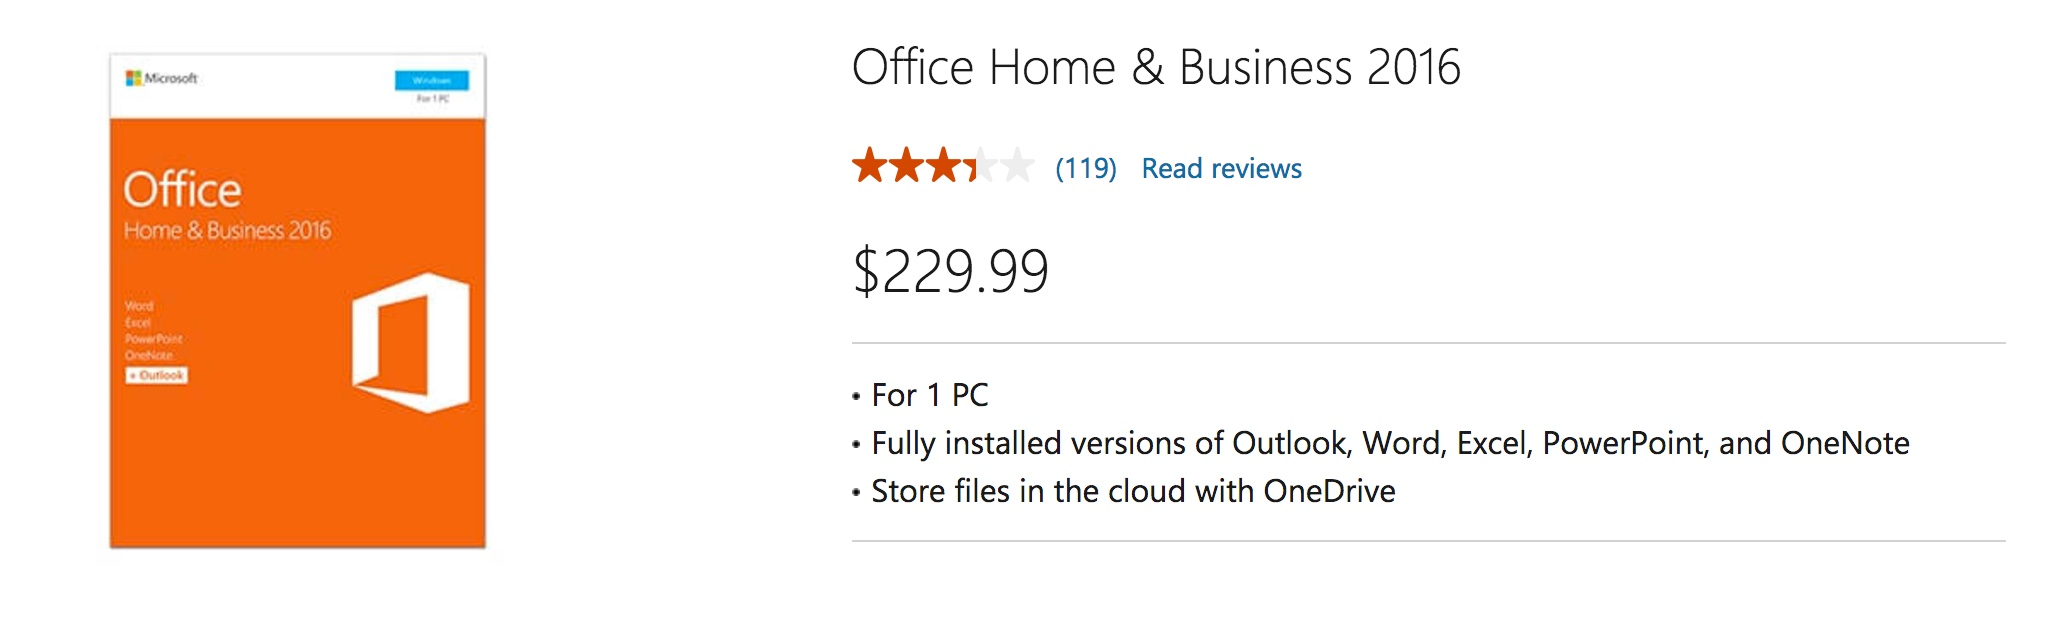 PC and Mac versions of Microsoft Office 2016 for just $9 95